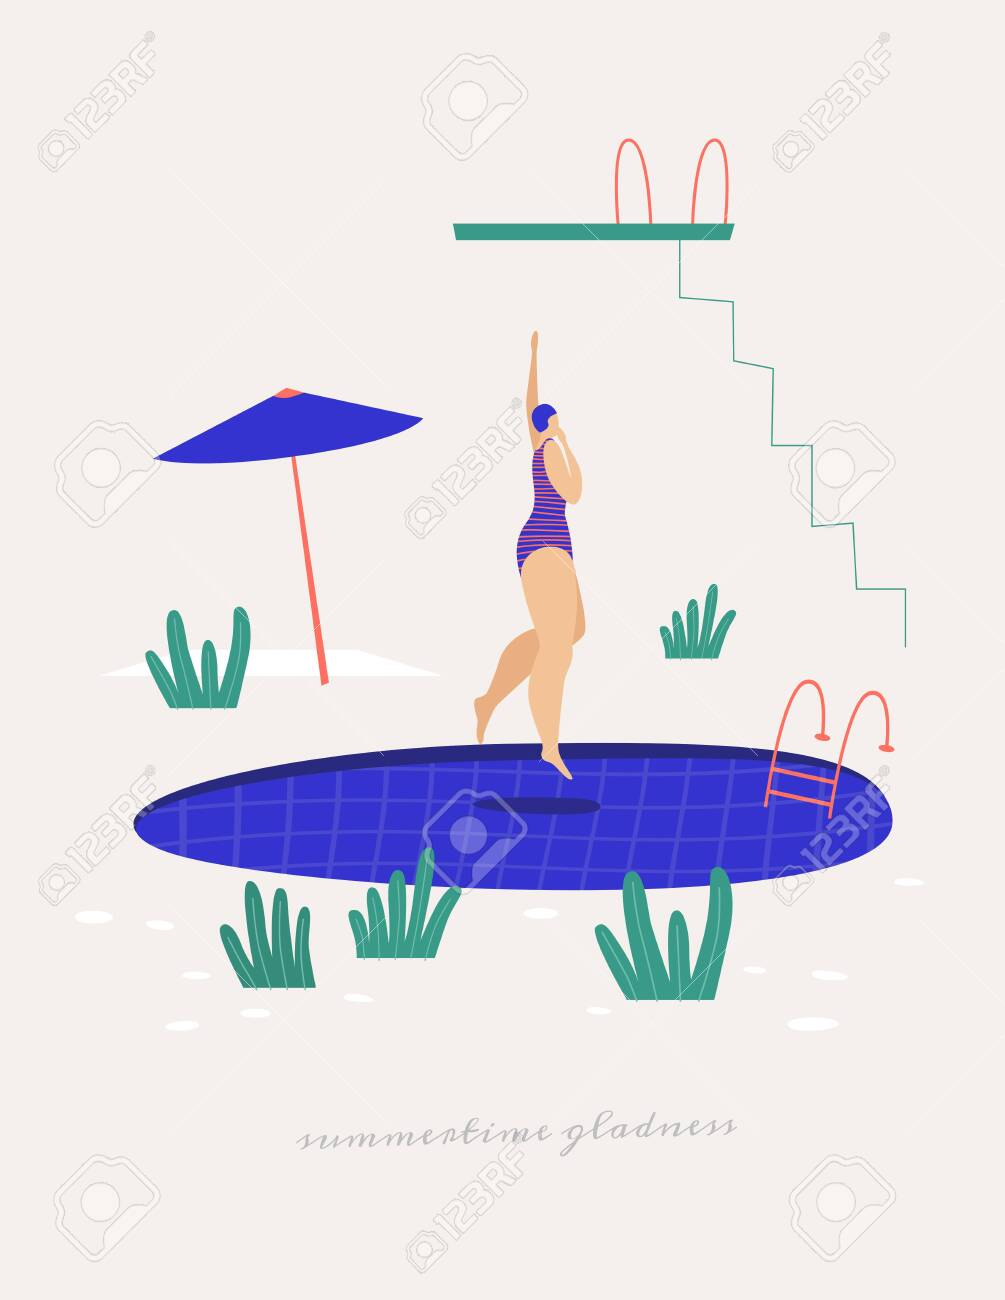 Cute girl in a bathing suit jumping into the pool. Leisure activities near the water in the summer. - 151406564